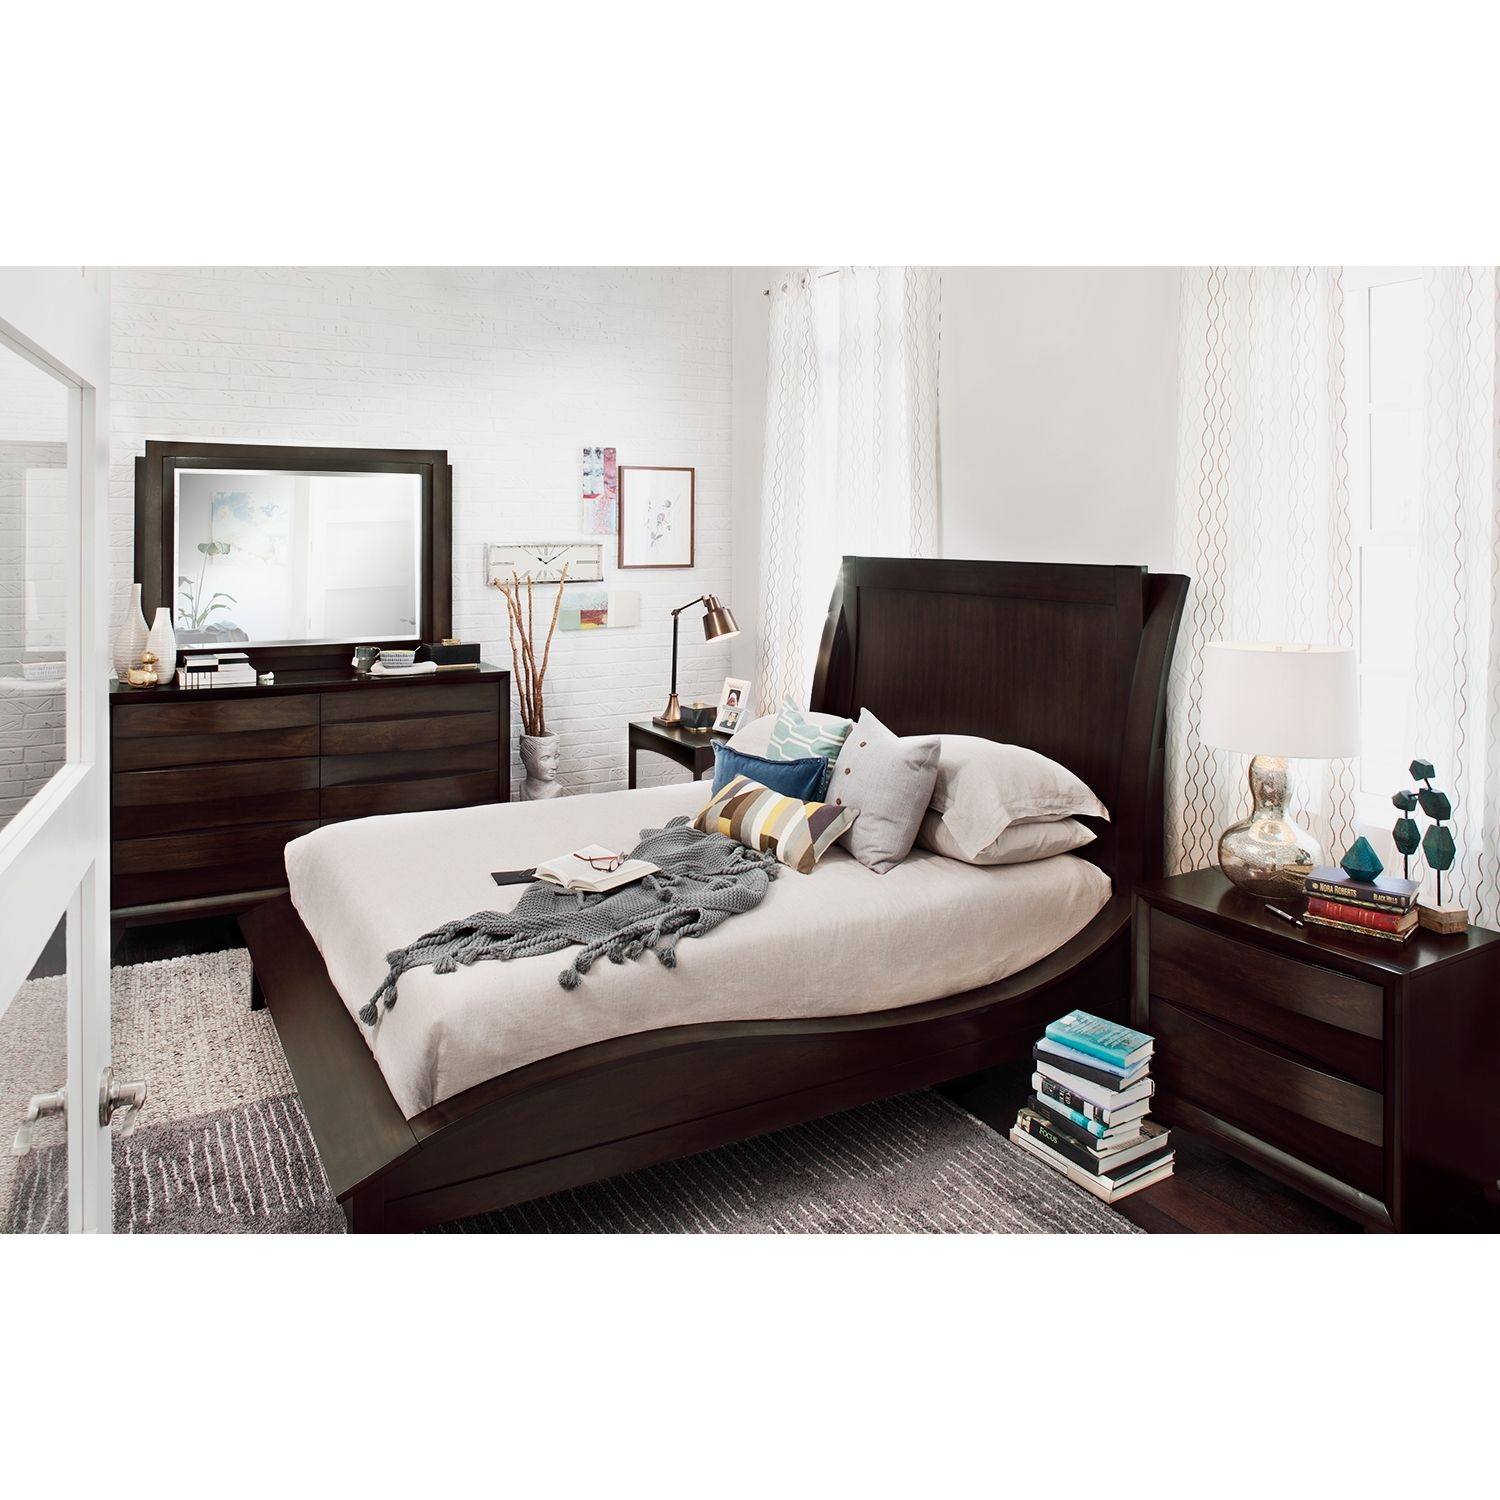 Cascade Merlot 6 Pc. Queen Bedroom | Value City Furniture ...